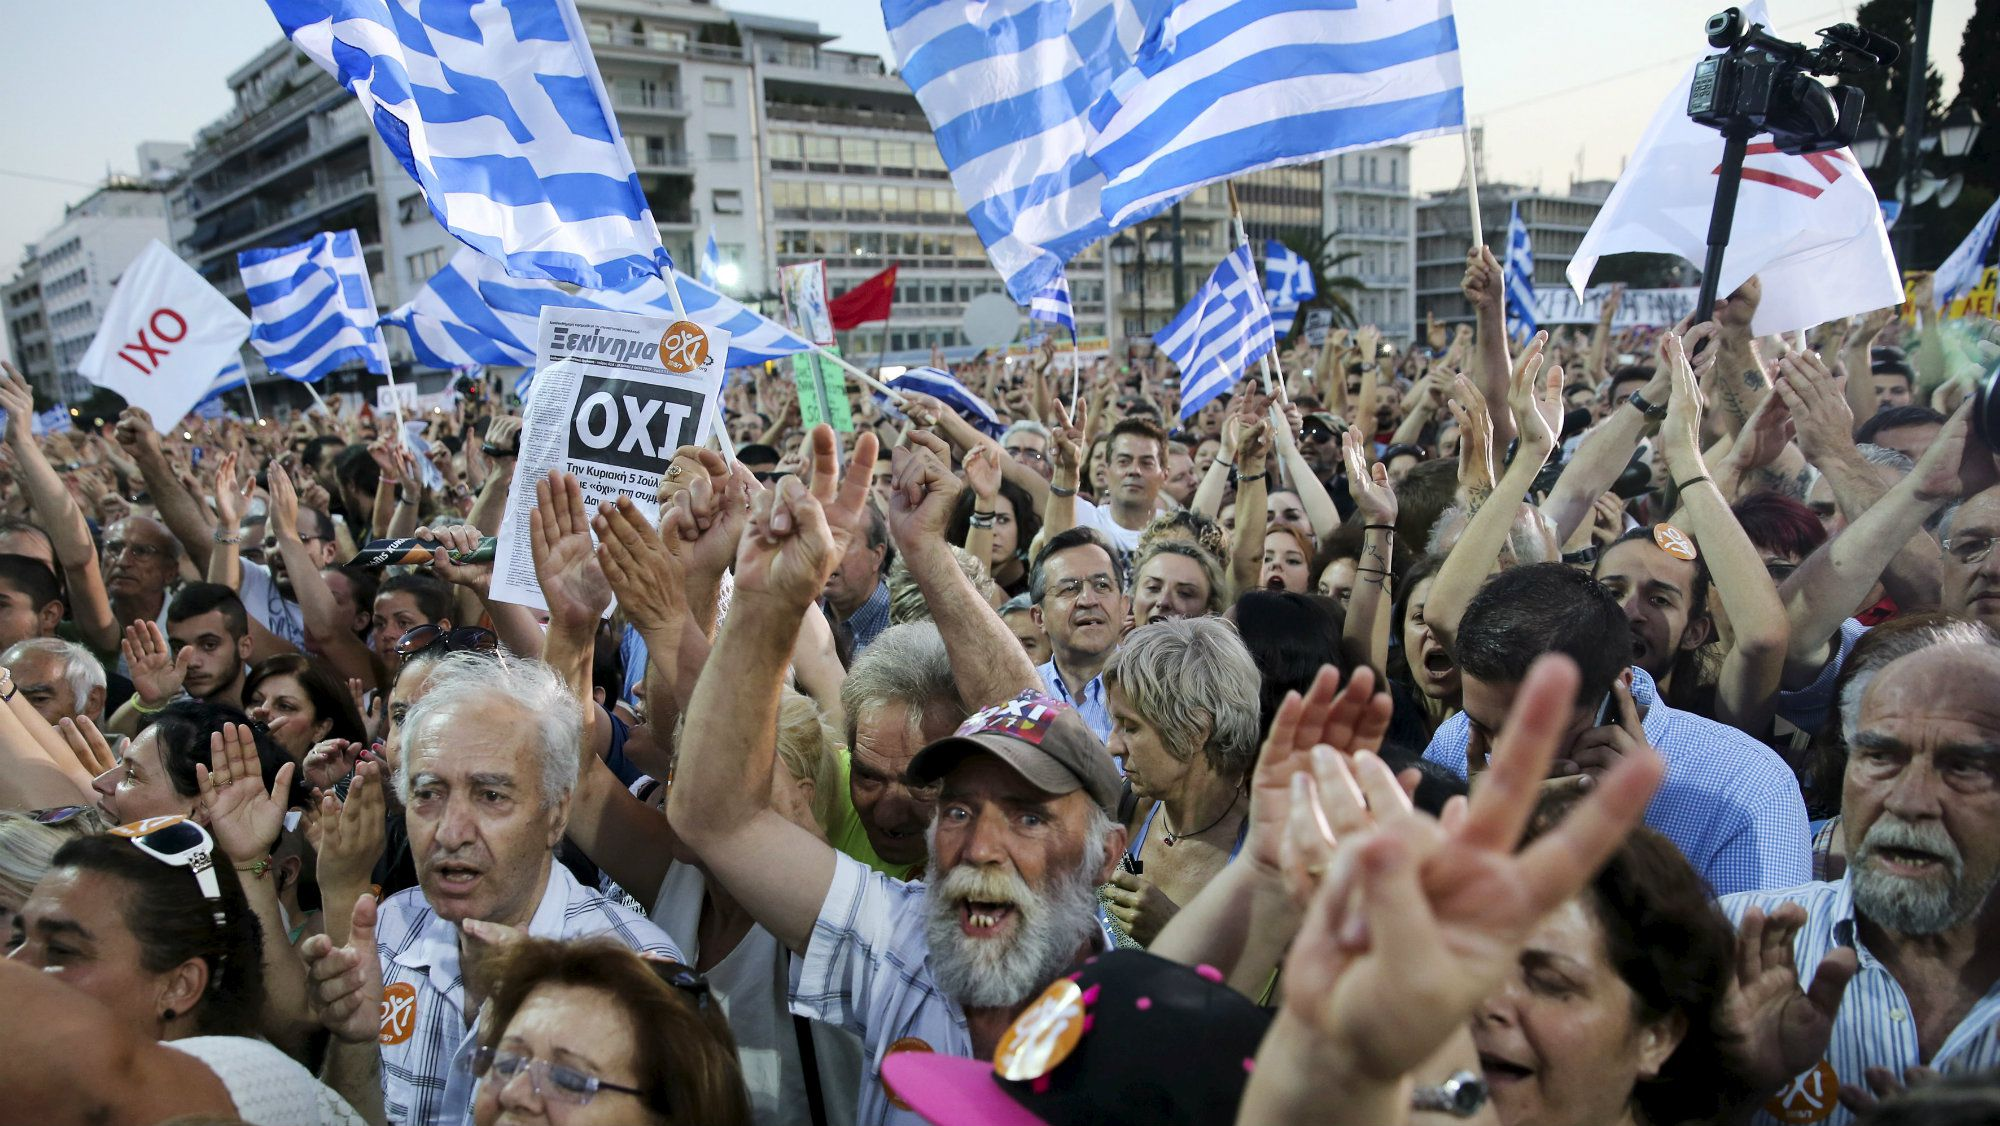 Demonstrators shout slogans during an anti-austerity rally in Syntagma Square in Athens, Greece.